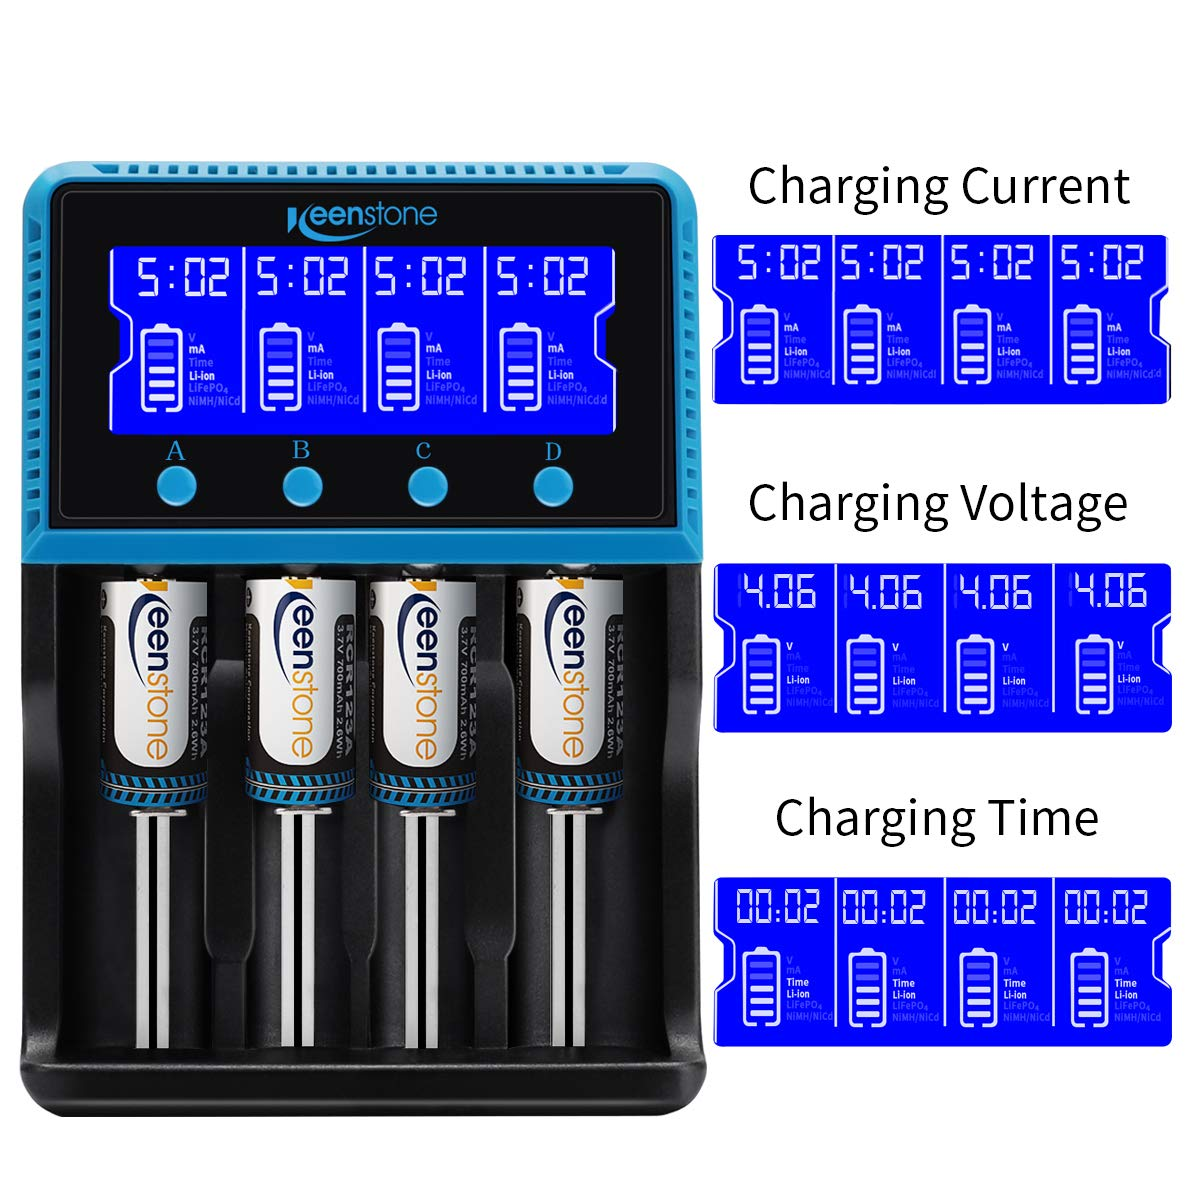 18650 Battery Charger, Keenstone Smart Universal Charger LCD Display for Rechargeable Batteries Ni-MH Ni-Cd AA AAA Li-ion LiFePO4 IMR 10440 14500 16340 RCR123A 26650